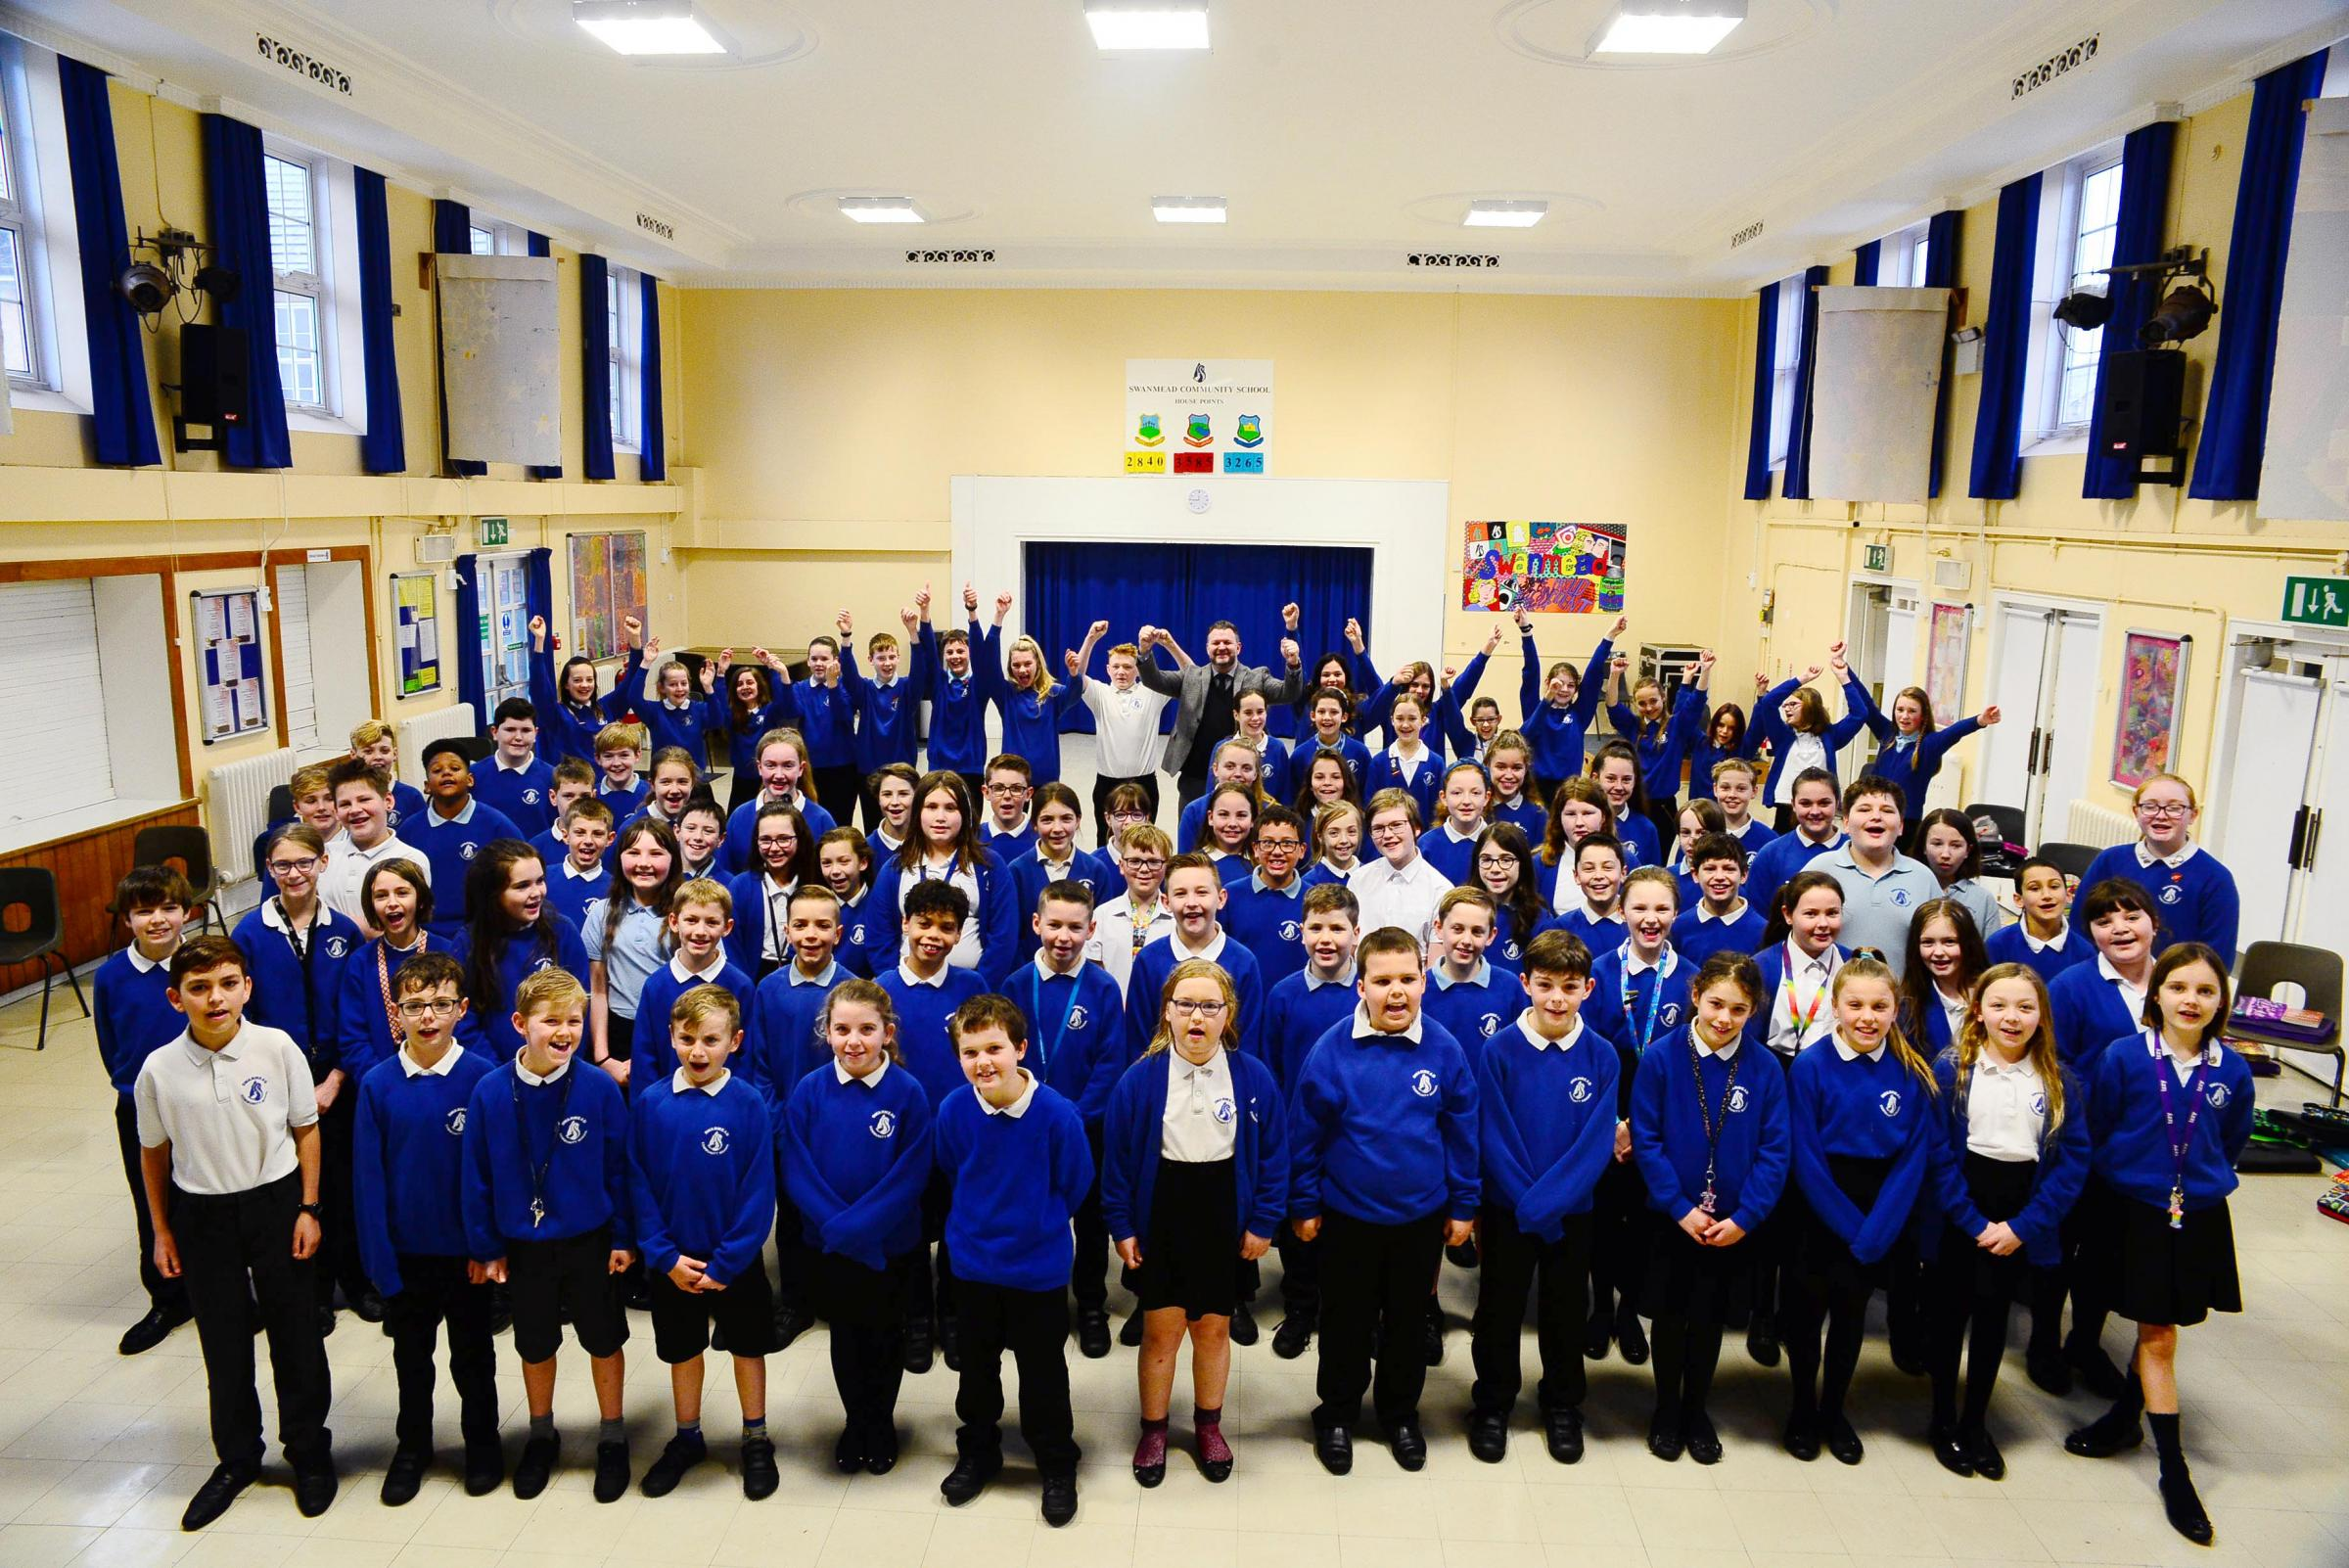 Swanmead School thrilled after being rated 'Good' across the board by Ofsted